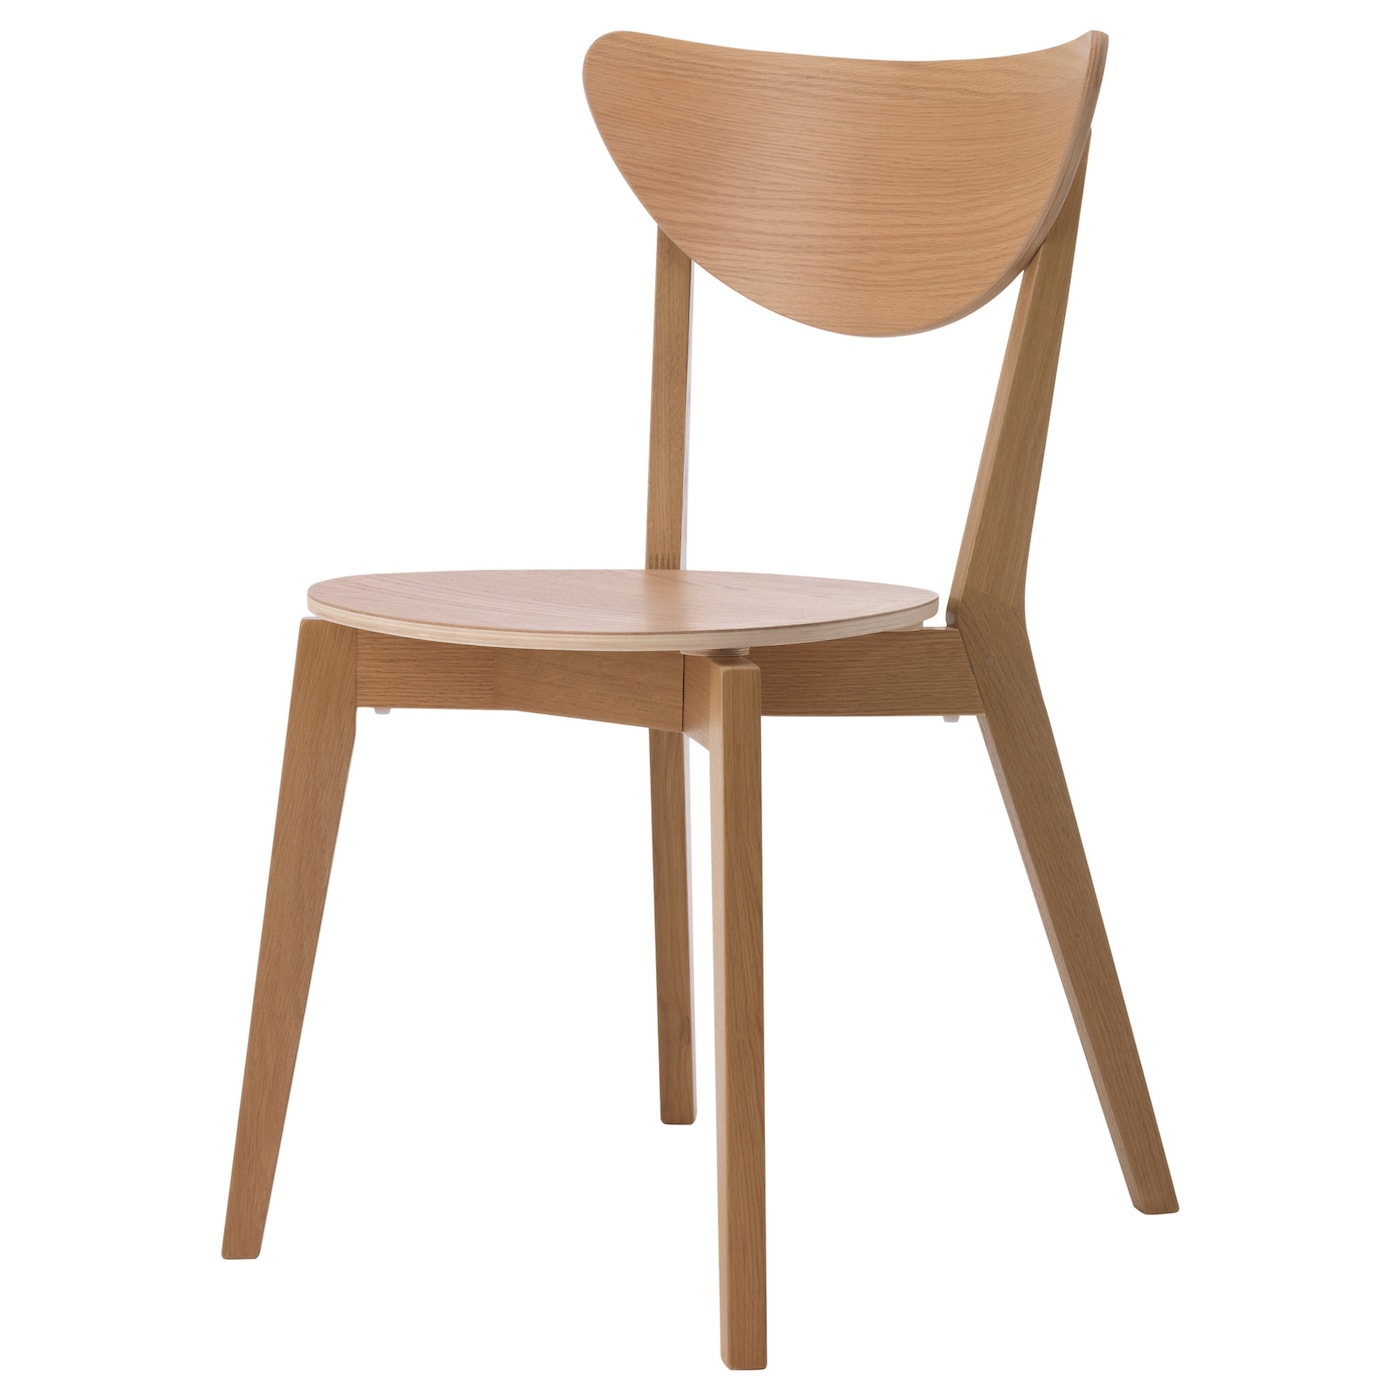 Ikea Nordmyra Chair You Can Stack The Chairs So They Take Less E When